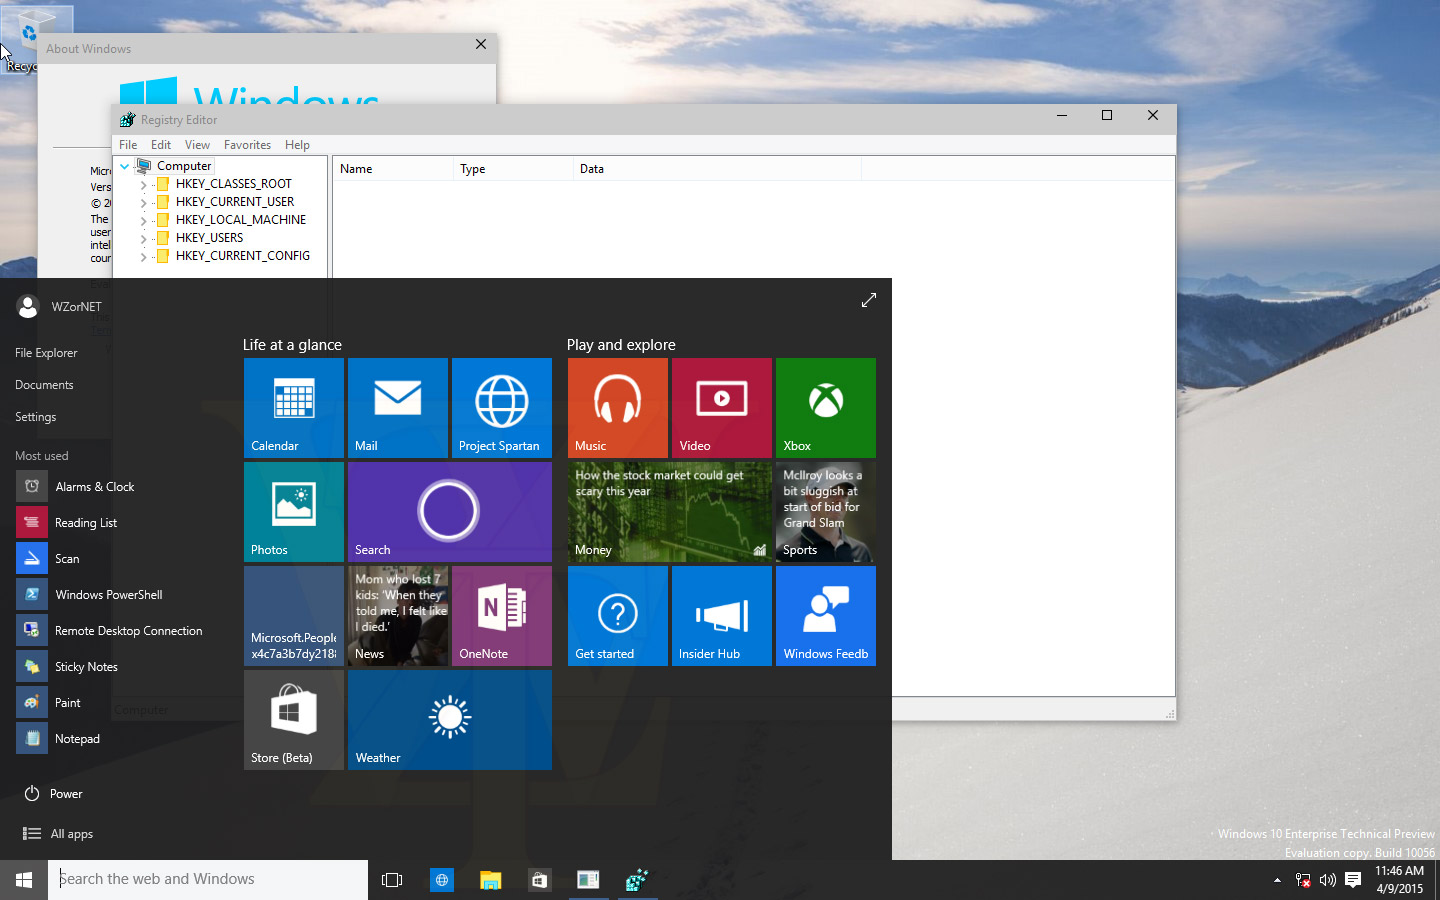 Windows 10 Build 10056 Leak